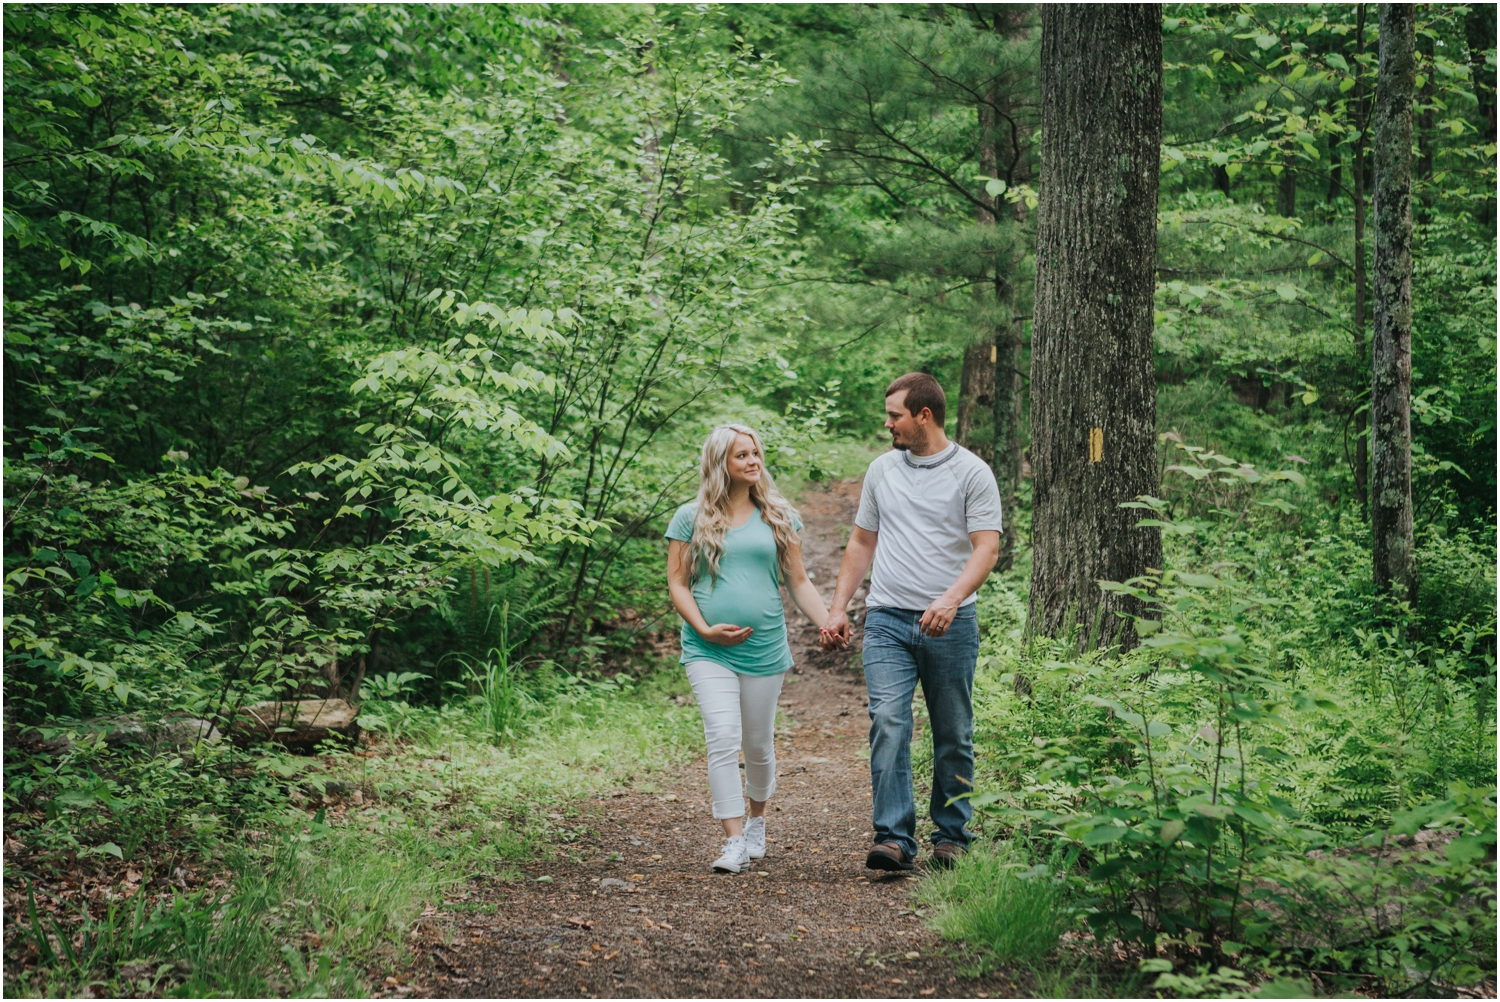 katy-sergent-photography-johnson-city-tennessee-northest-tn-elopement-intimate-wedding-photographer-outdoors-adventurous-couples-adventure-lovers_0011.jpg